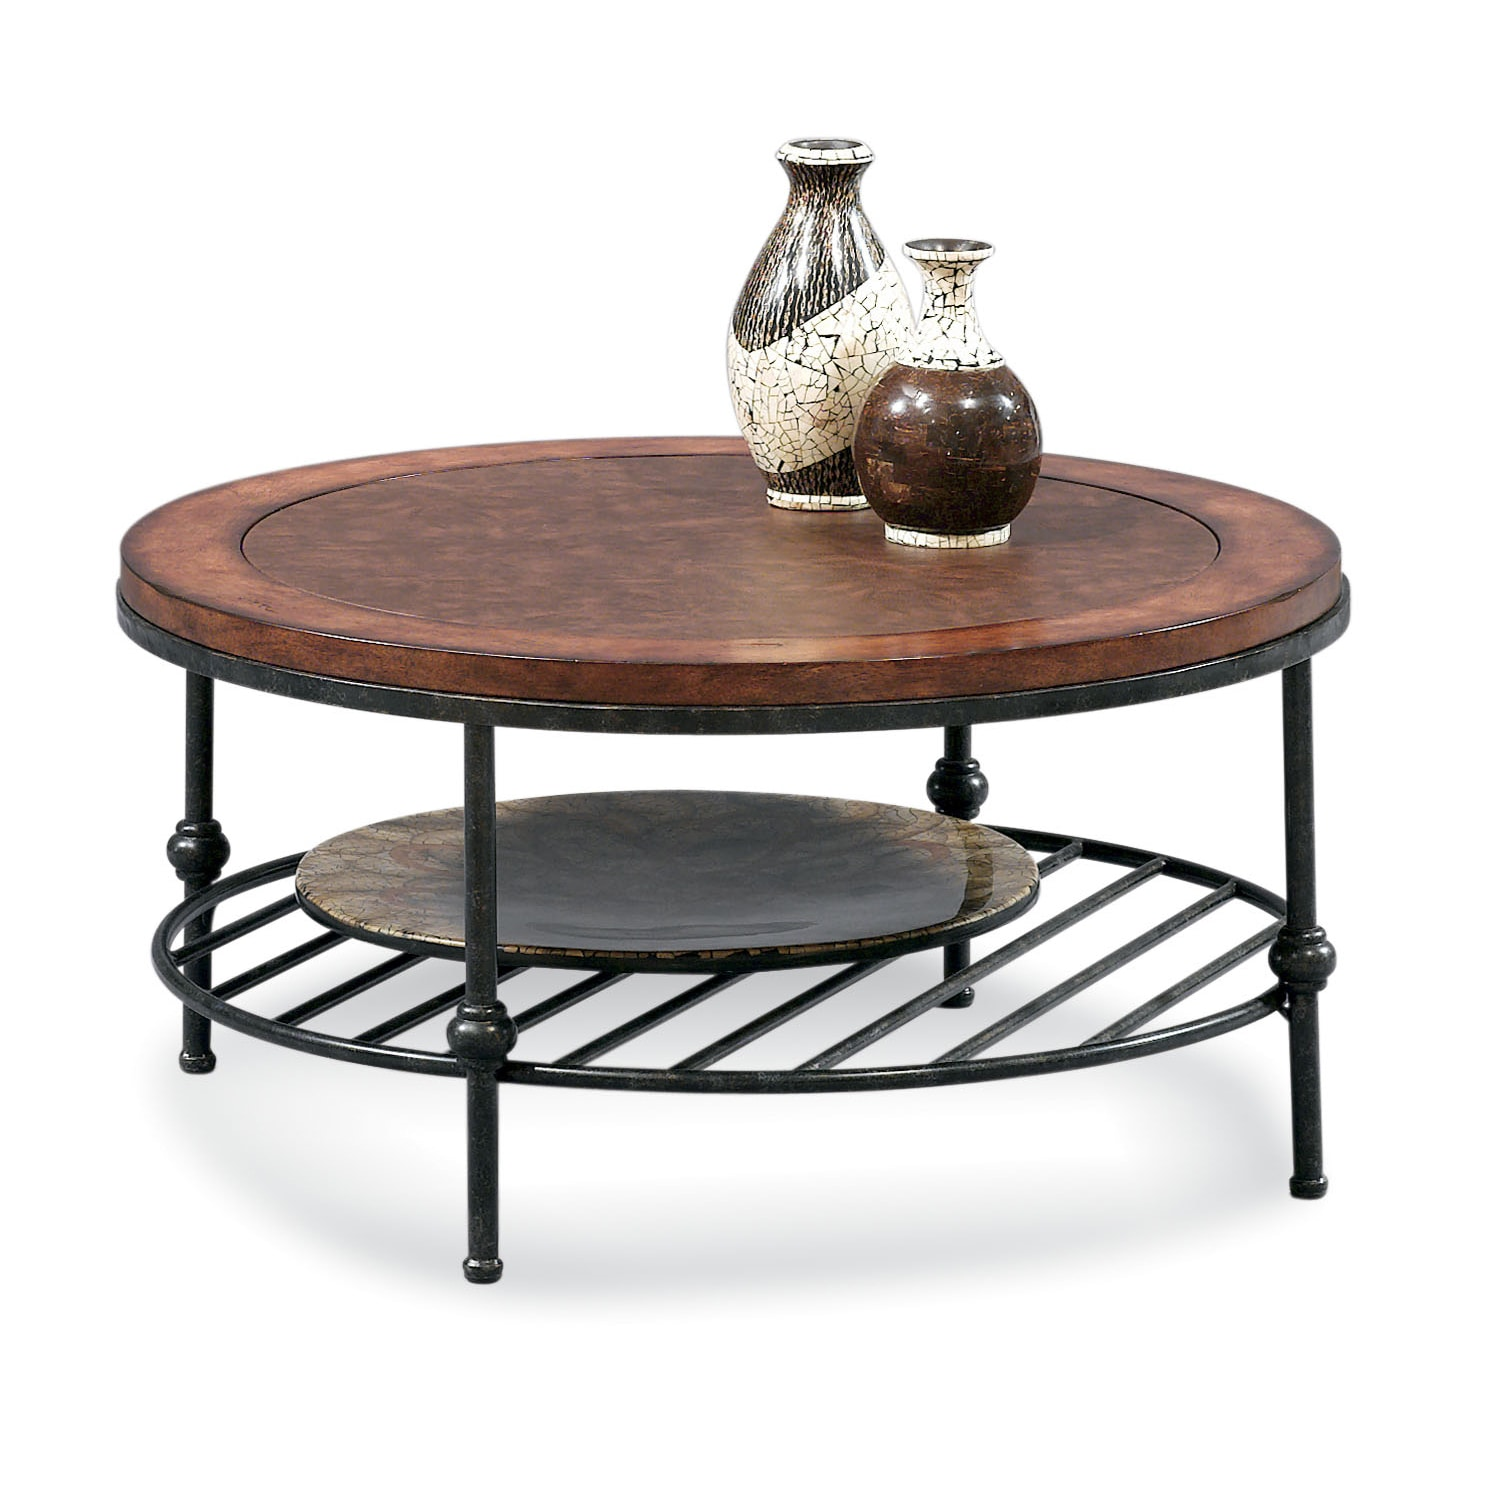 Bassett Mirror Bentley Cocktail Table With Leather Insert (Large, Tobacco & Pewter, Round)